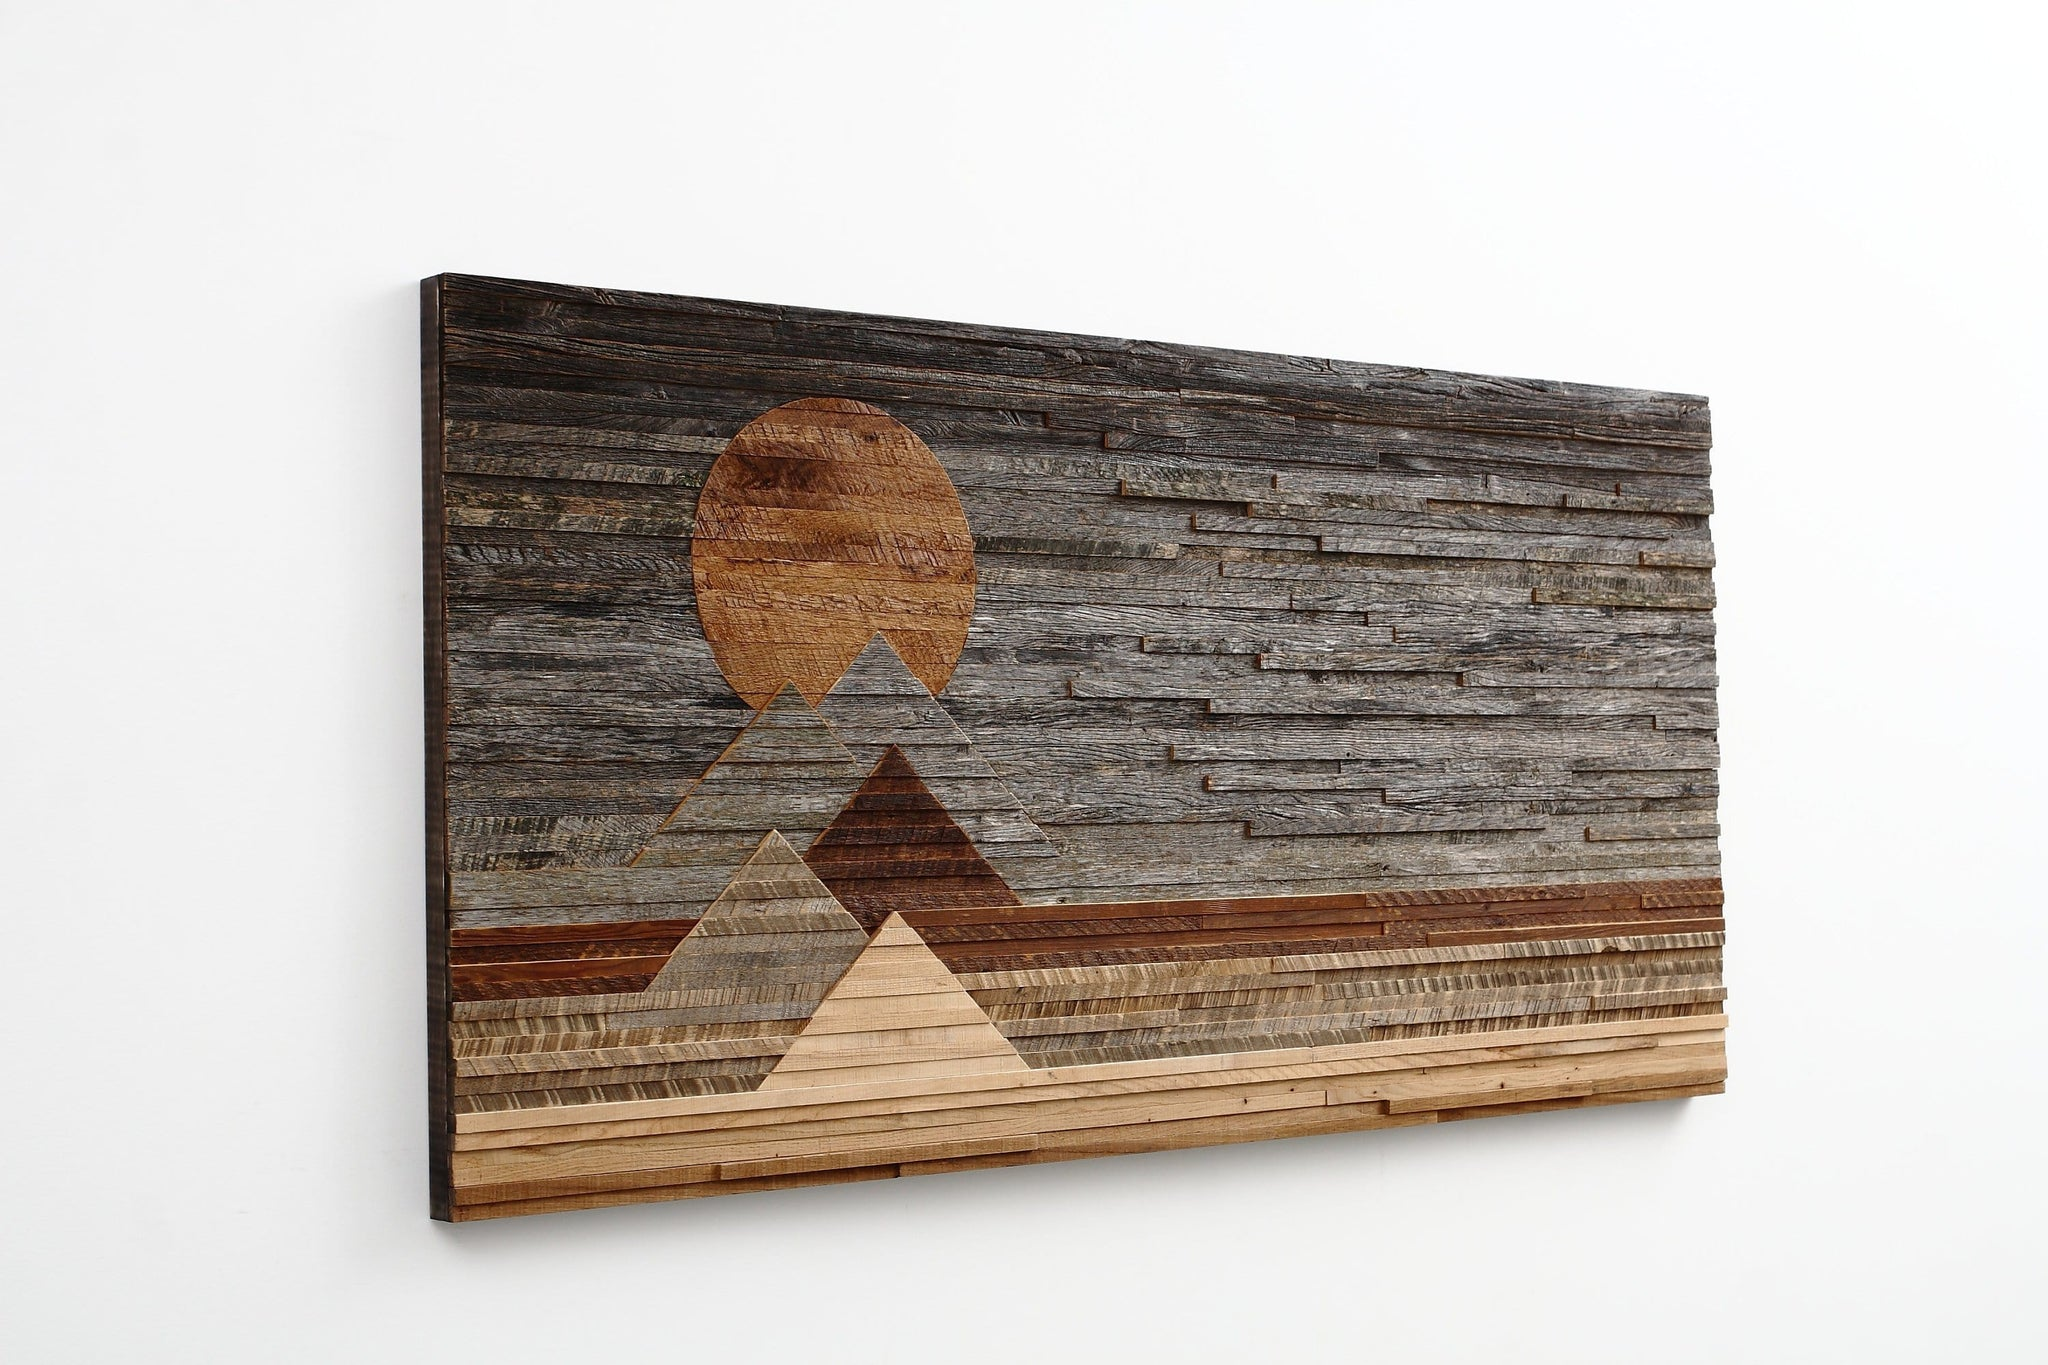 Blood Moon, wood wall art